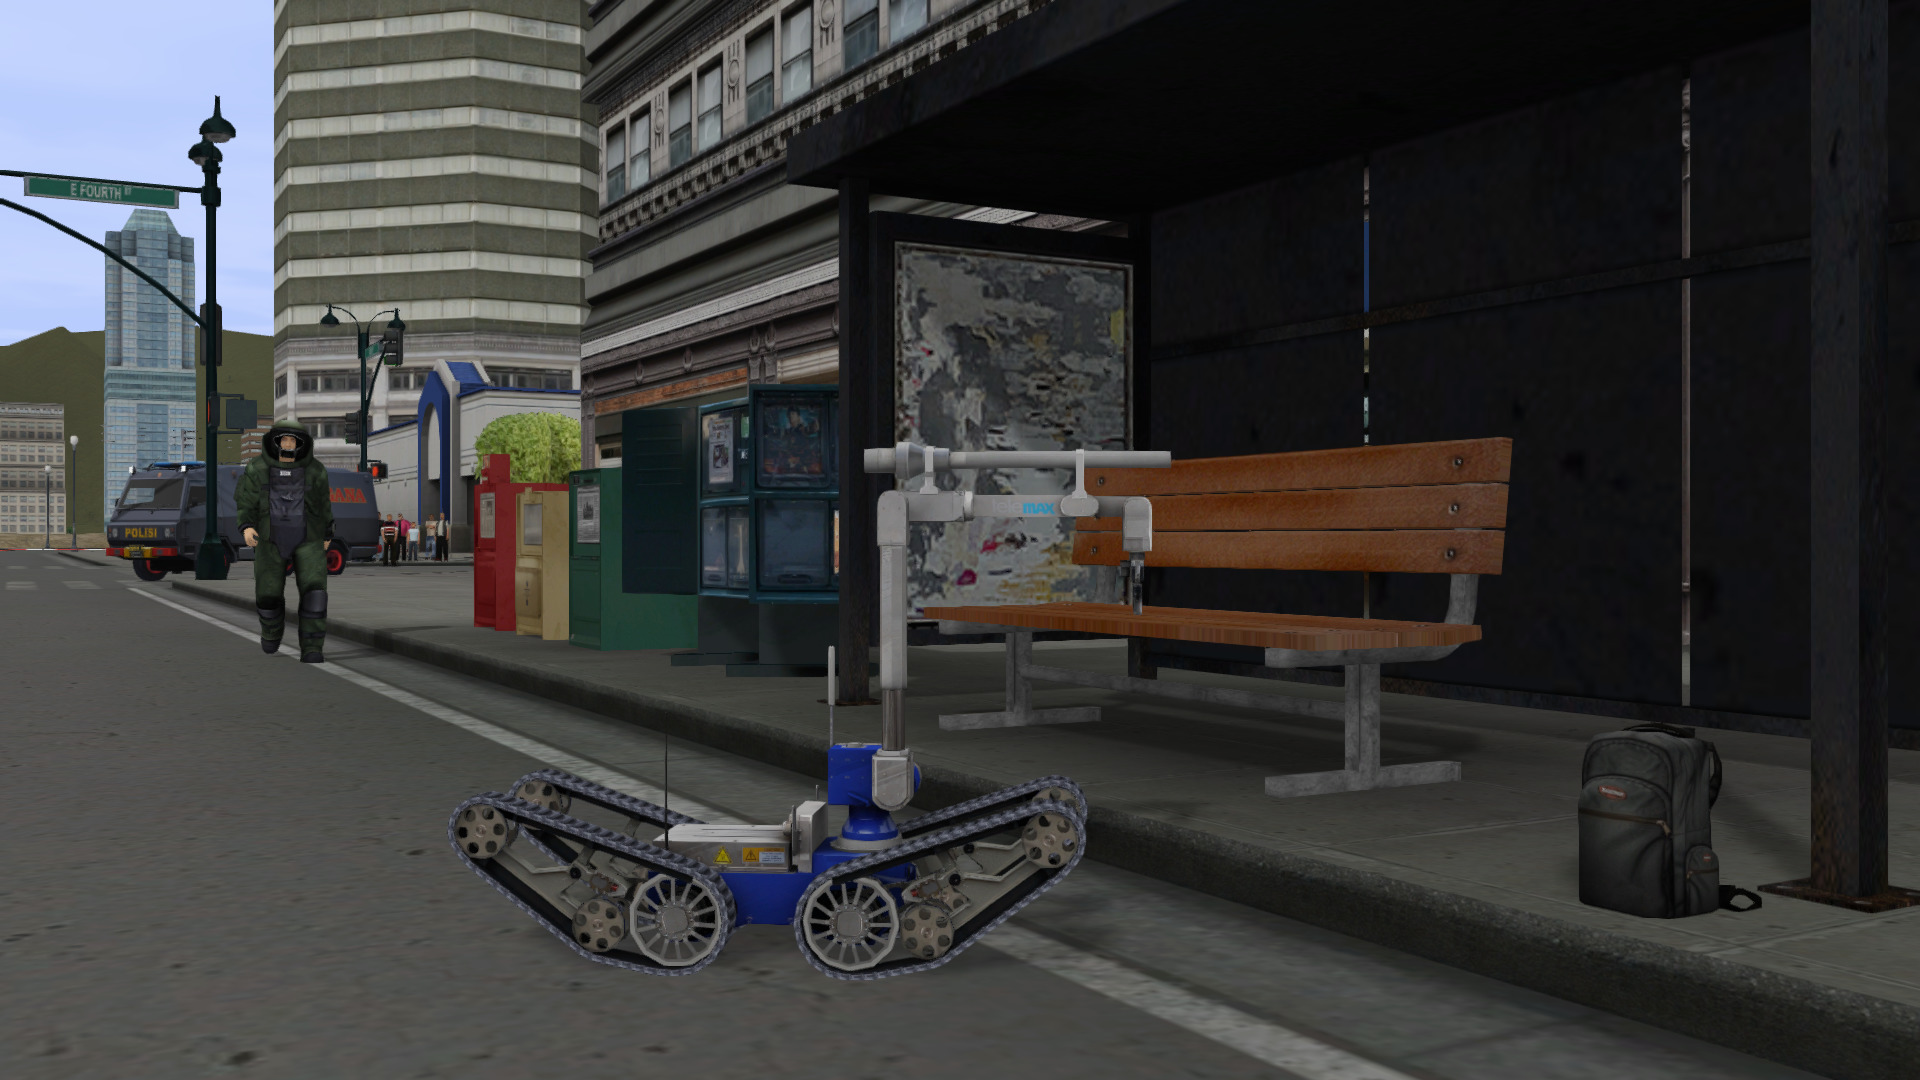 EOD Bot moving in closer to investigate a possible IED at a bus stop.